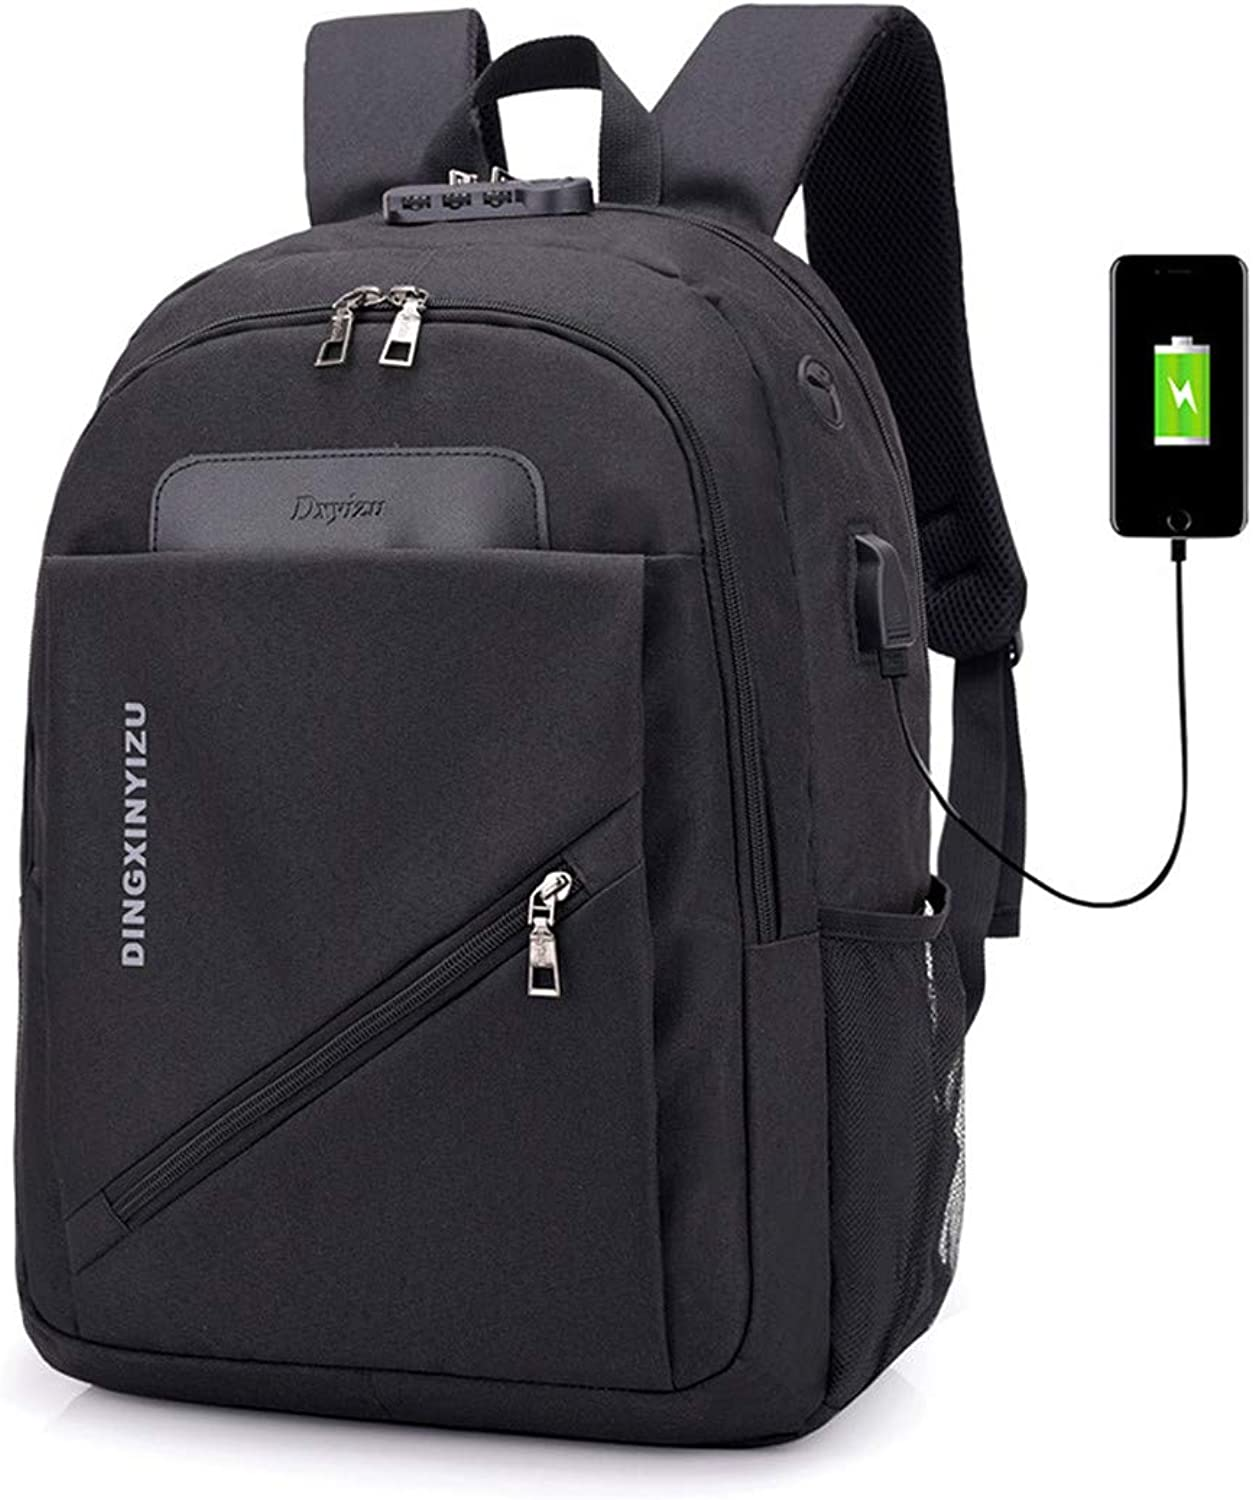 Large Capacity Backpack Anti-Theft Lock for Men Laptop Backpack Computer for Business Work Travel with USB Charging Port&Headphone Interface Fits Water Resistant